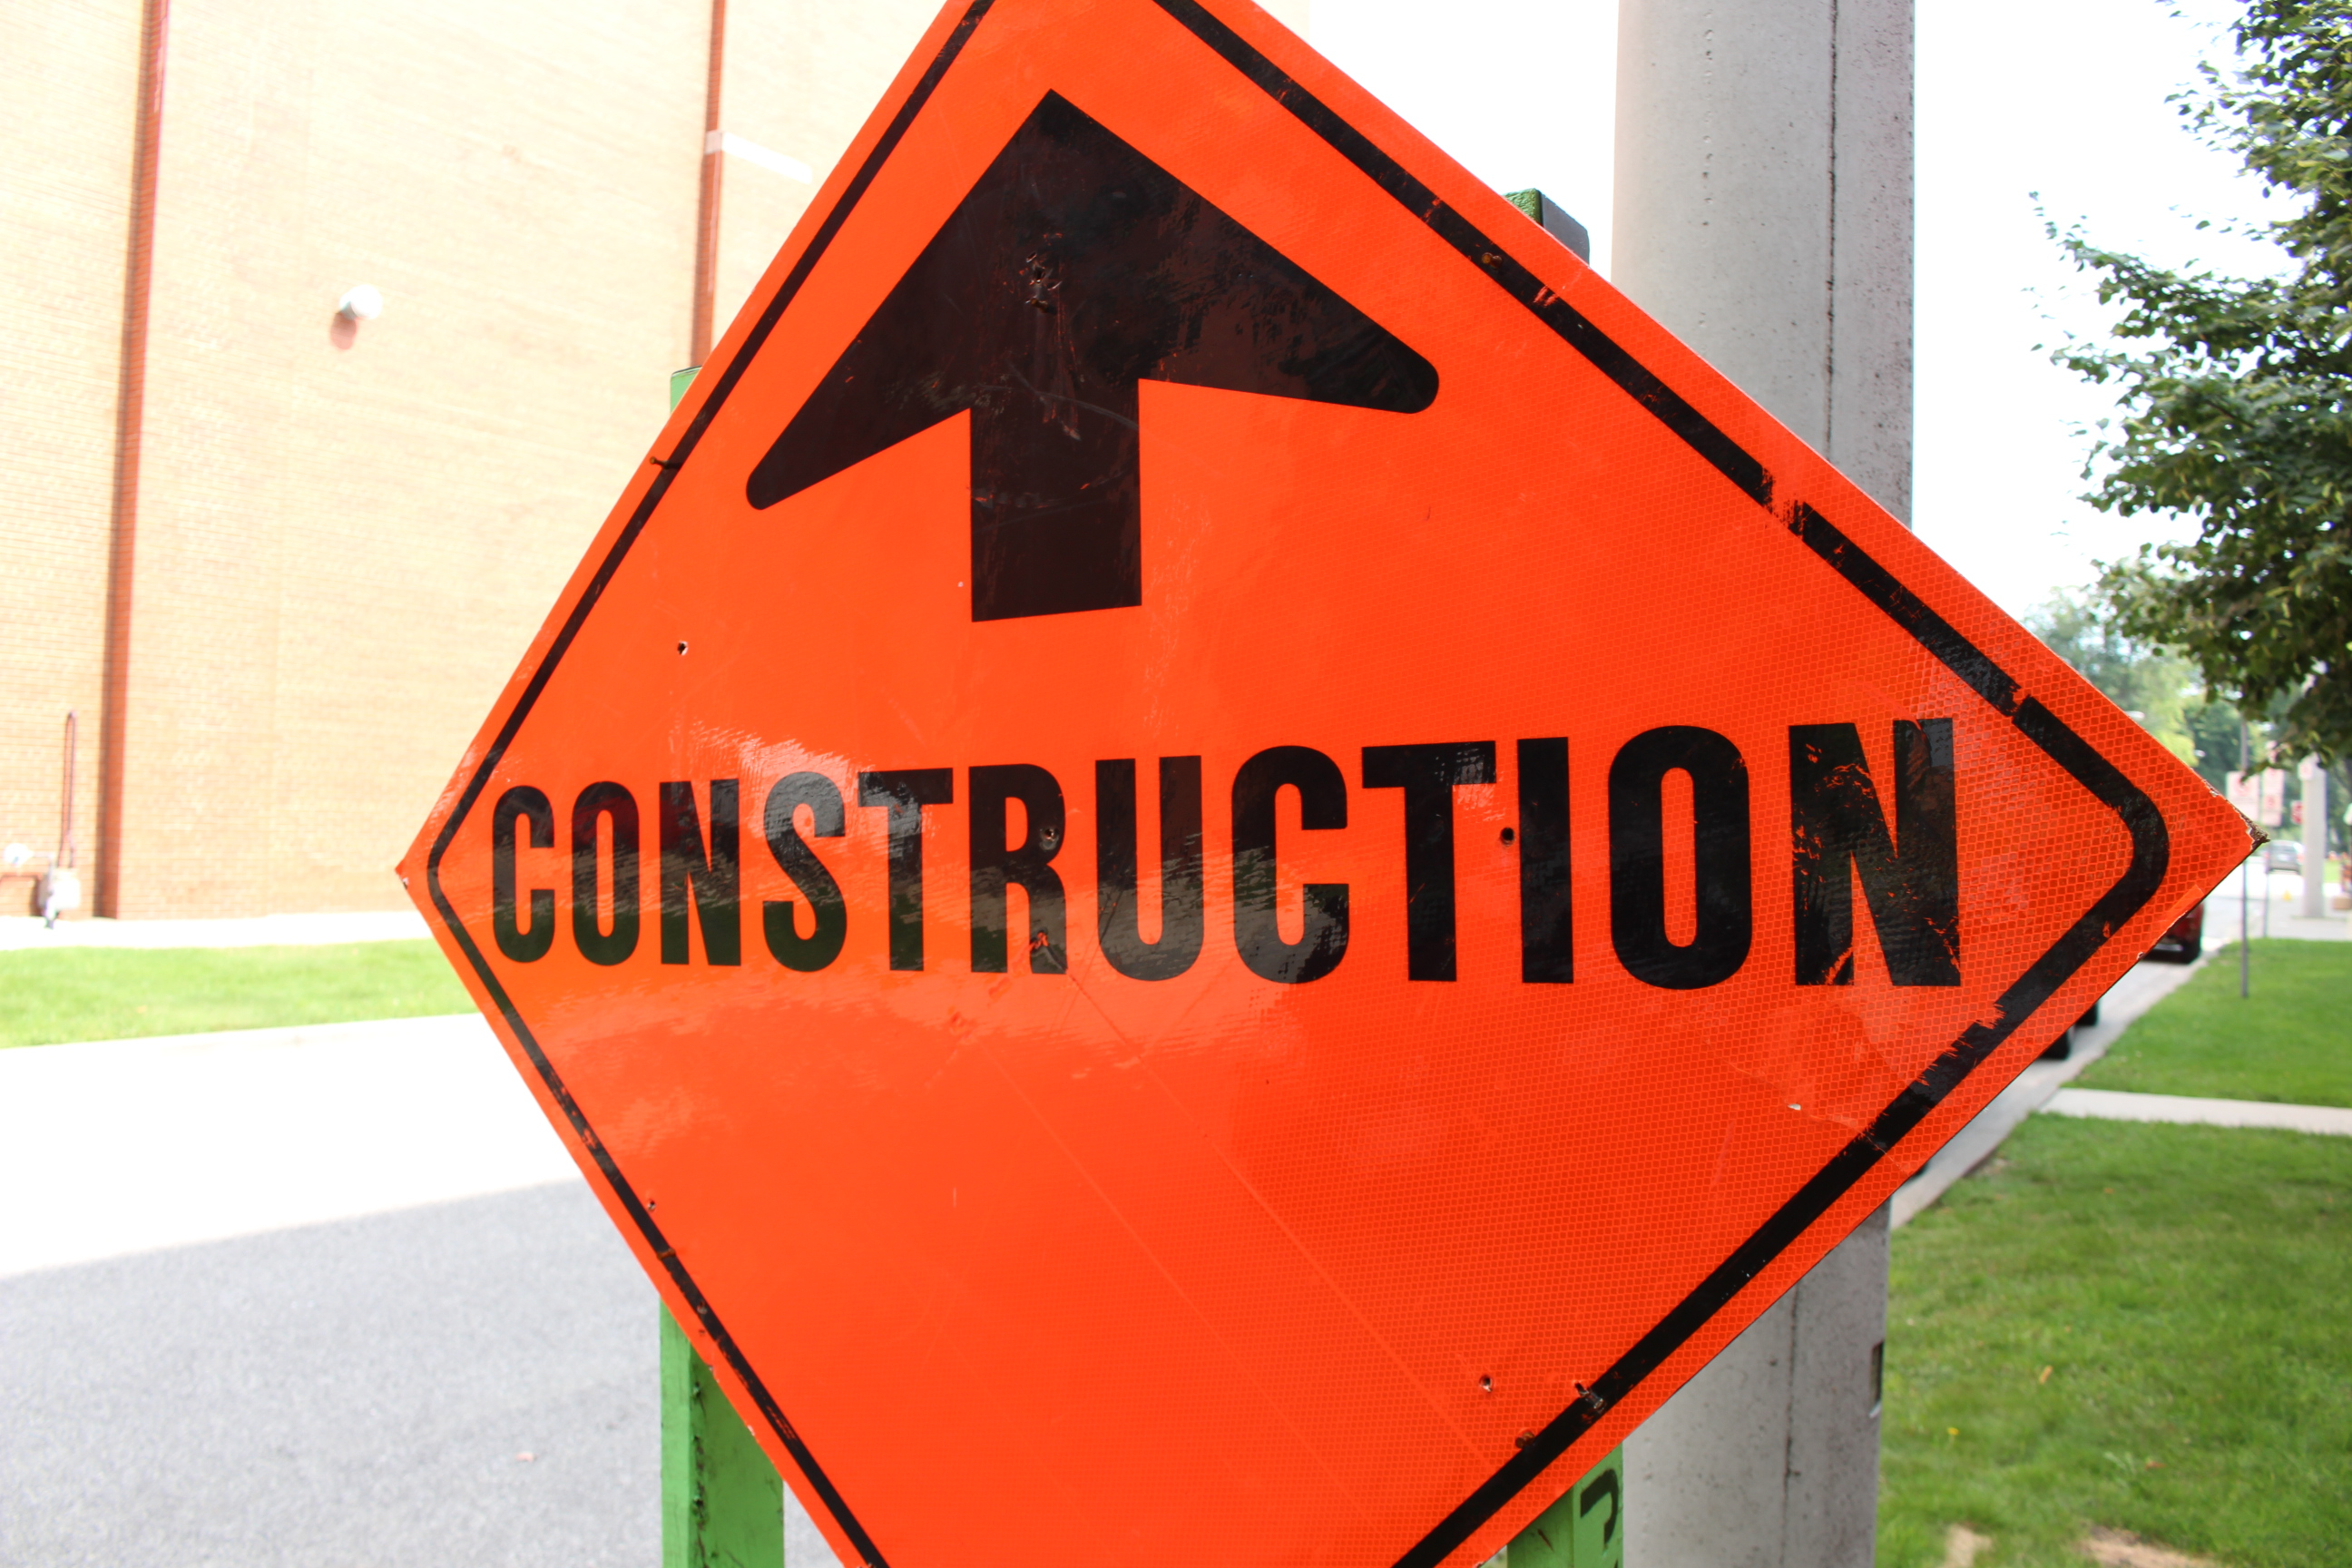 Overnight Closure of 10th Street West in Owen Sound